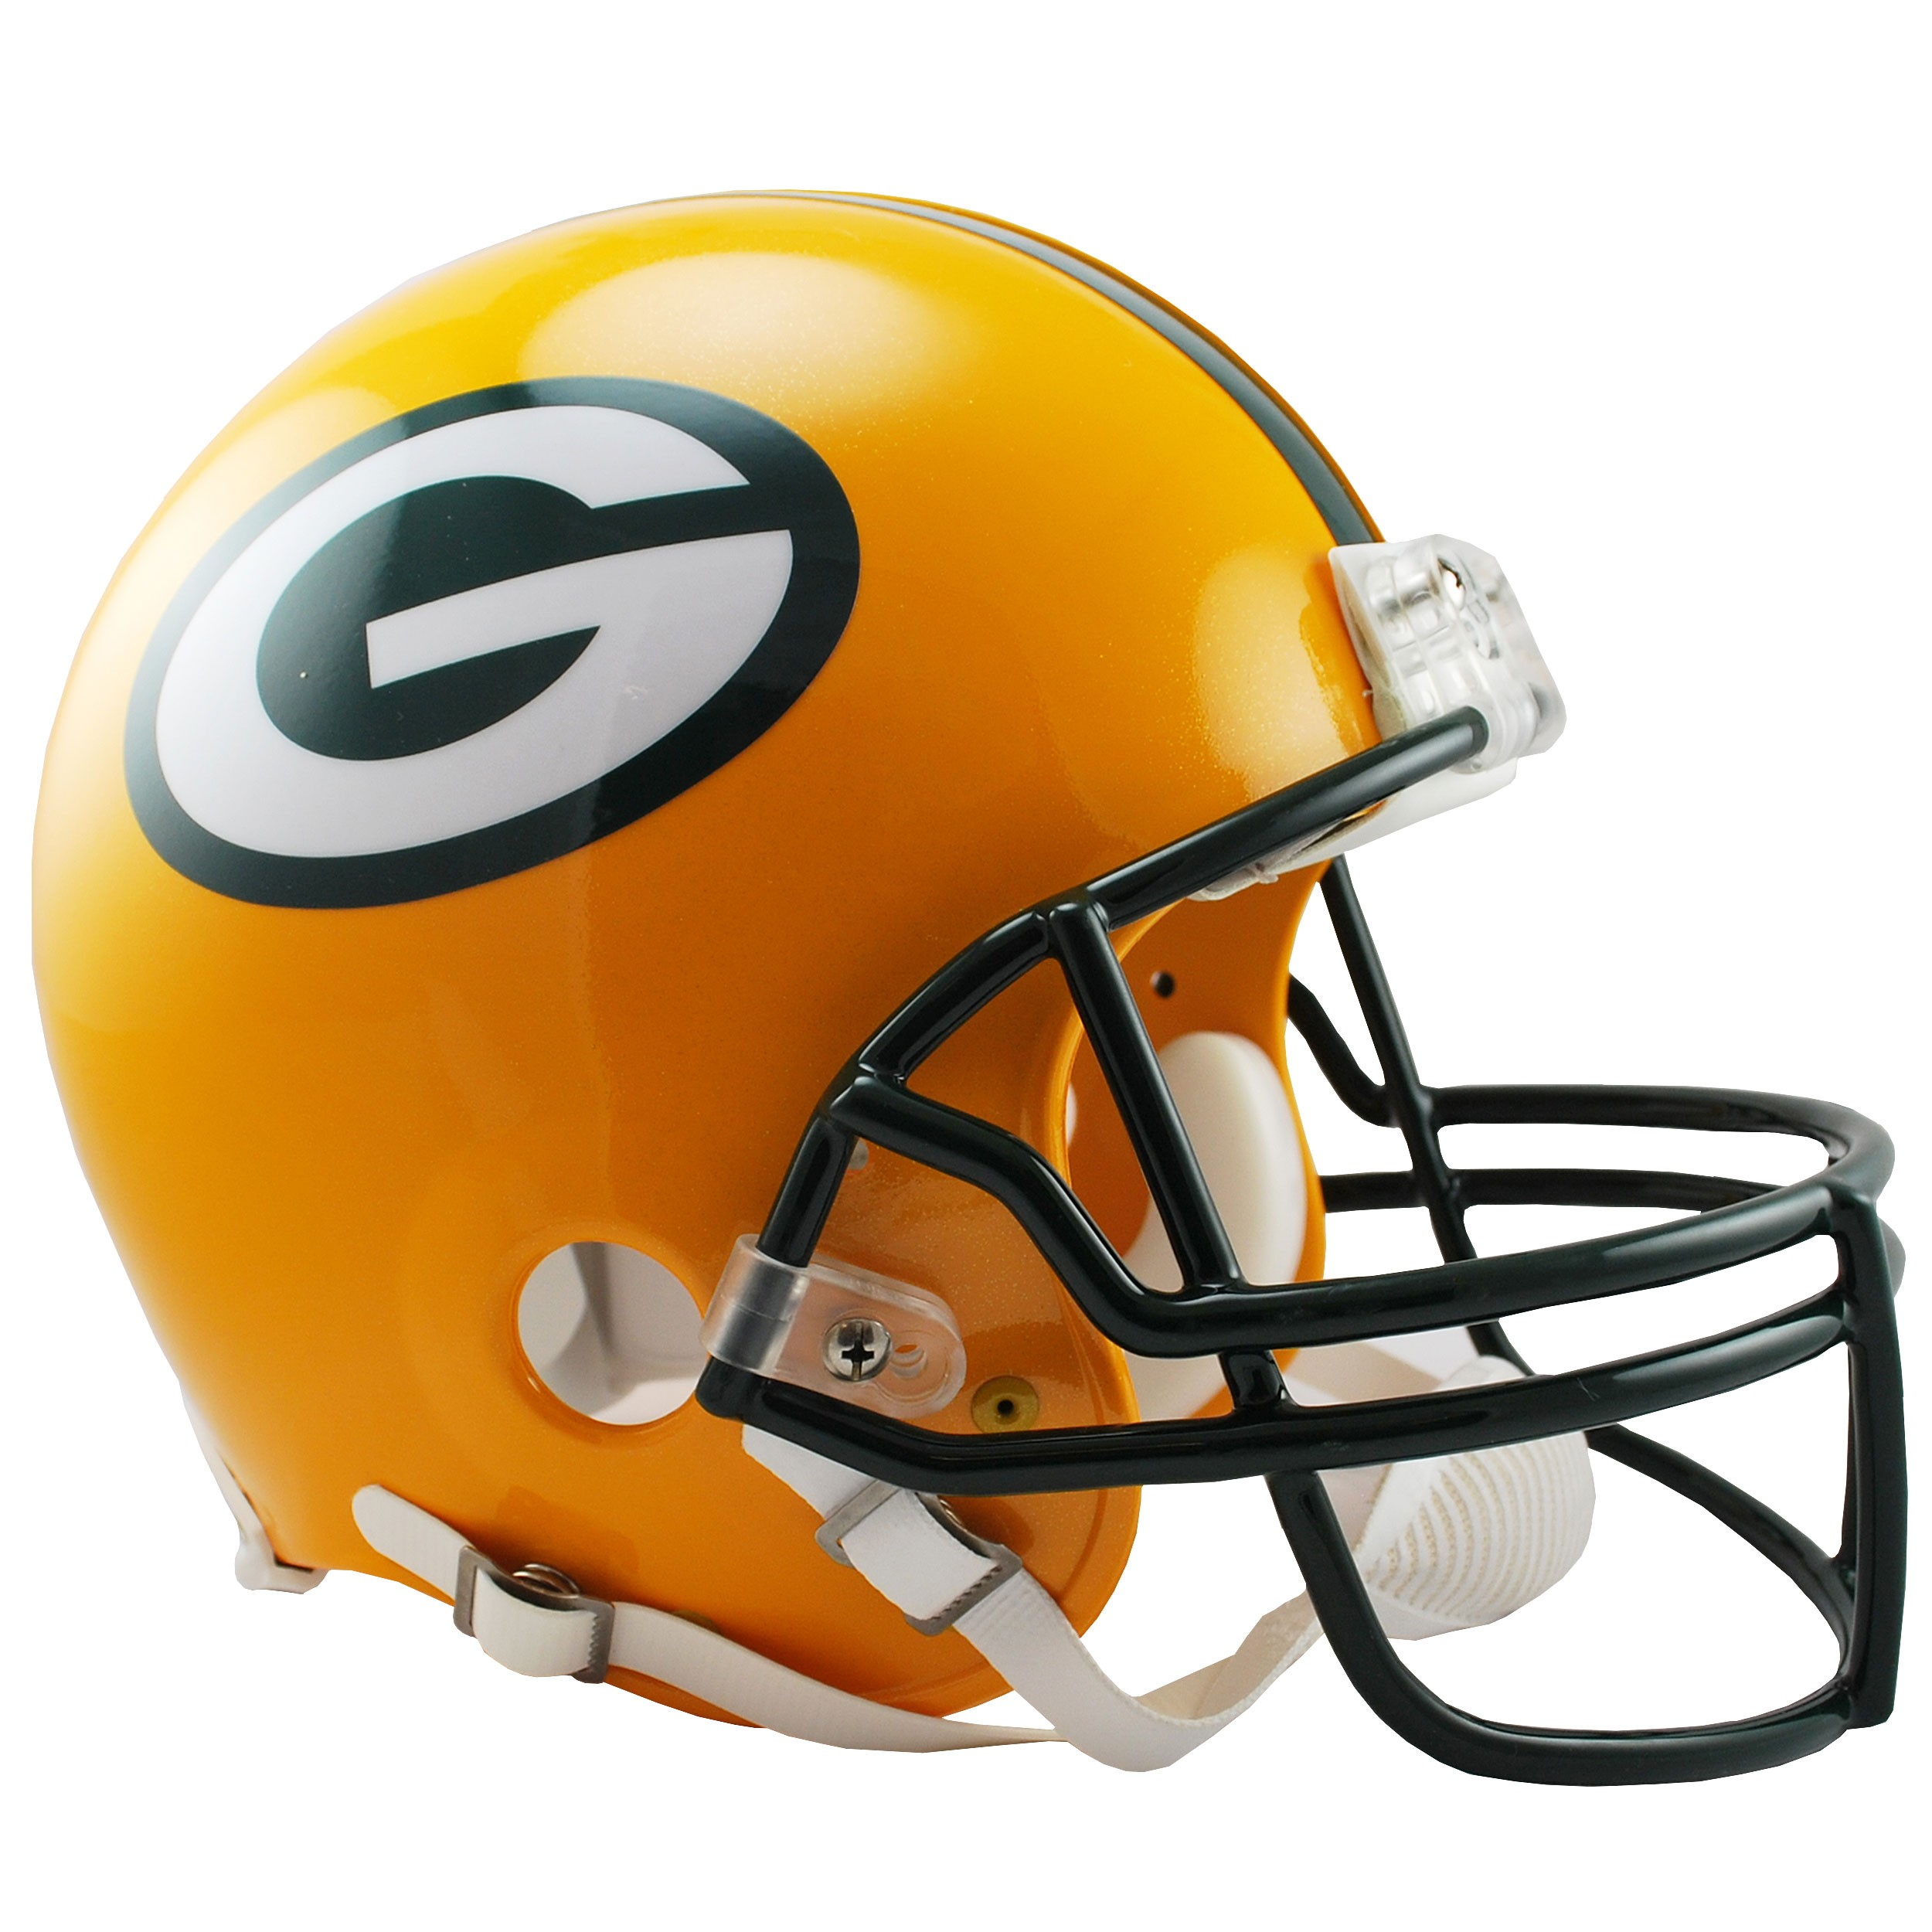 Green Bay Packers Authentic Helmet at the Packers Pro Shop.